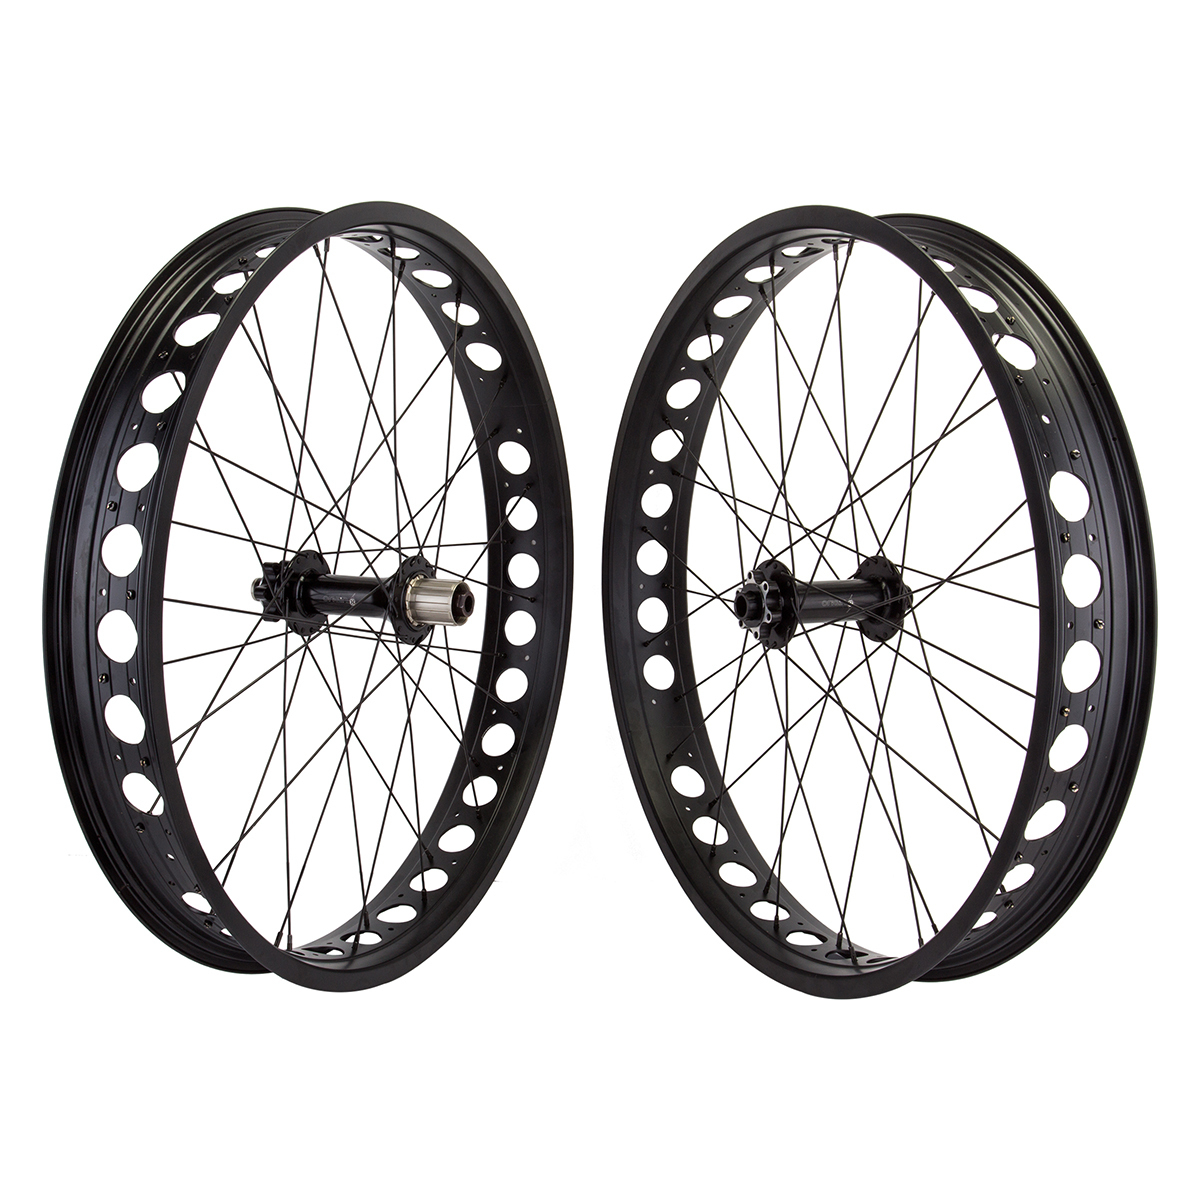 Origin8 AT-Pro80 Cruiser Wheelset 26x4 Black 8/9/10-Speed